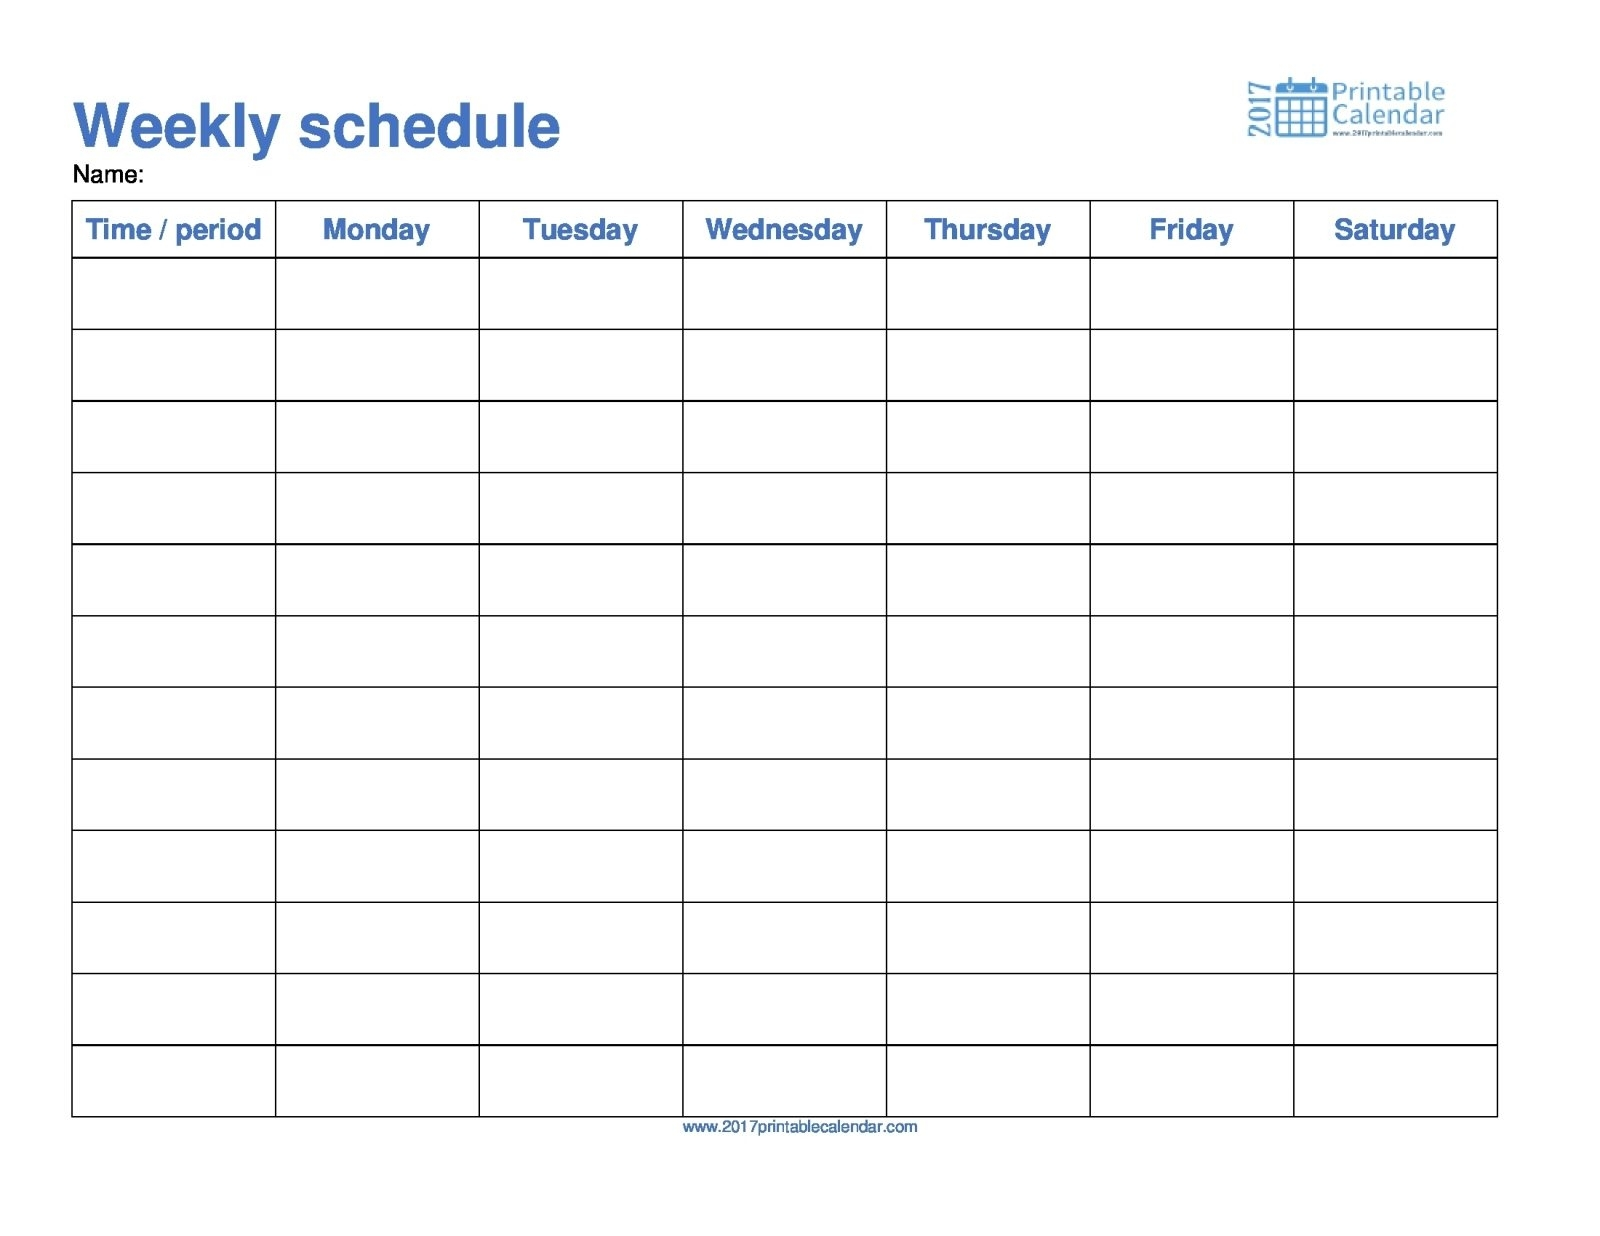 Monday To Sunday Schedule Template Free Weekly Templates For Word with Weekly Schedule Monday - Sunday